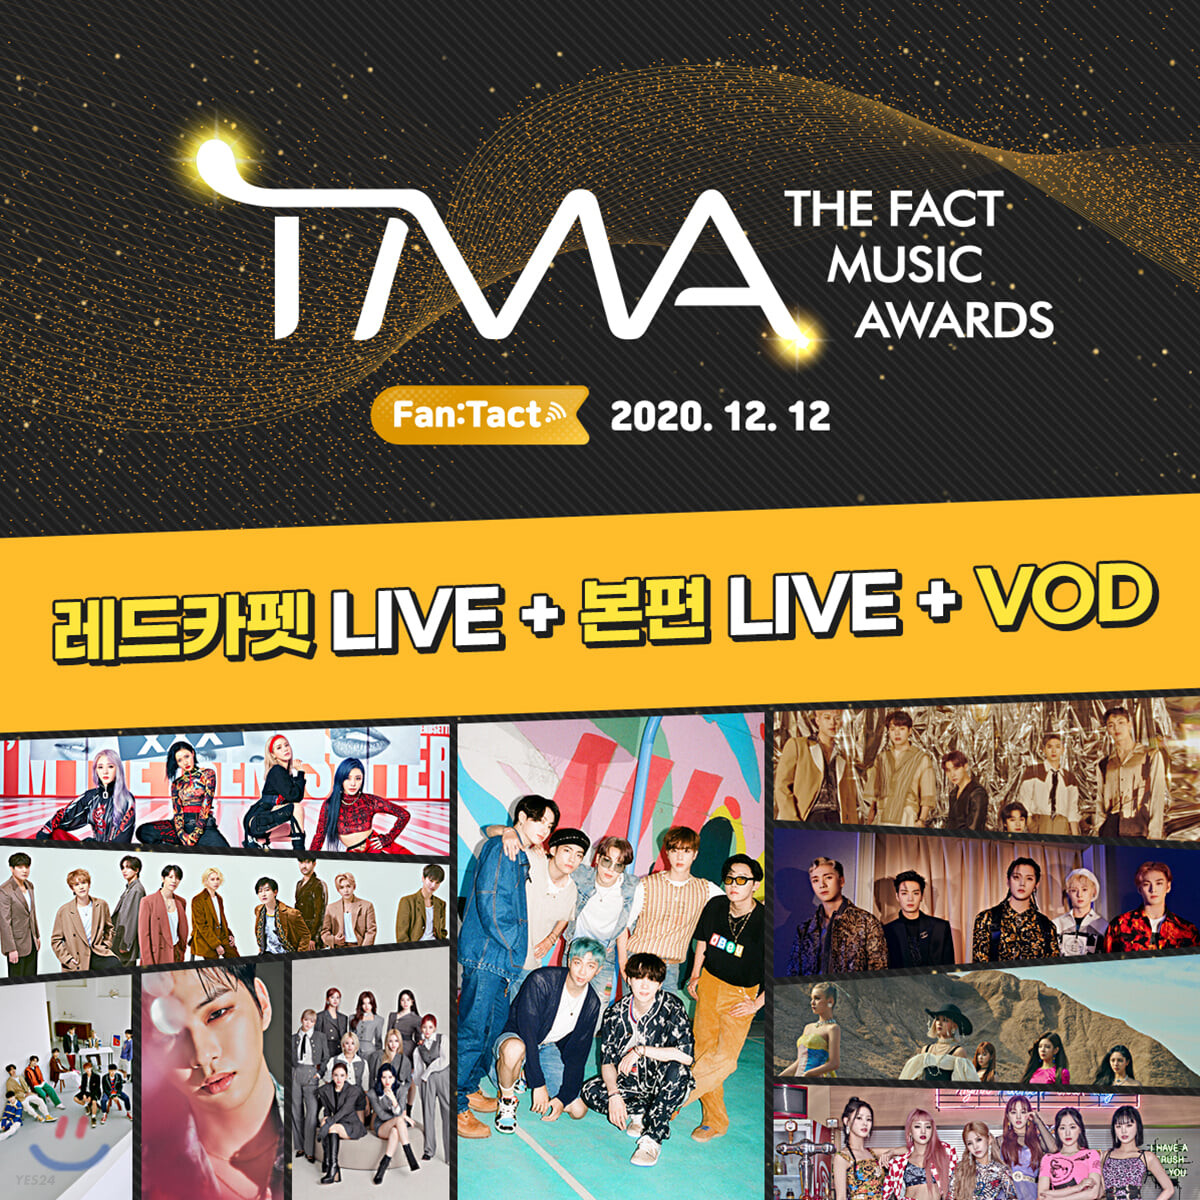 2020 THE FACT MUSIC AWARDS [FAN:TACT] LIVE + VOD